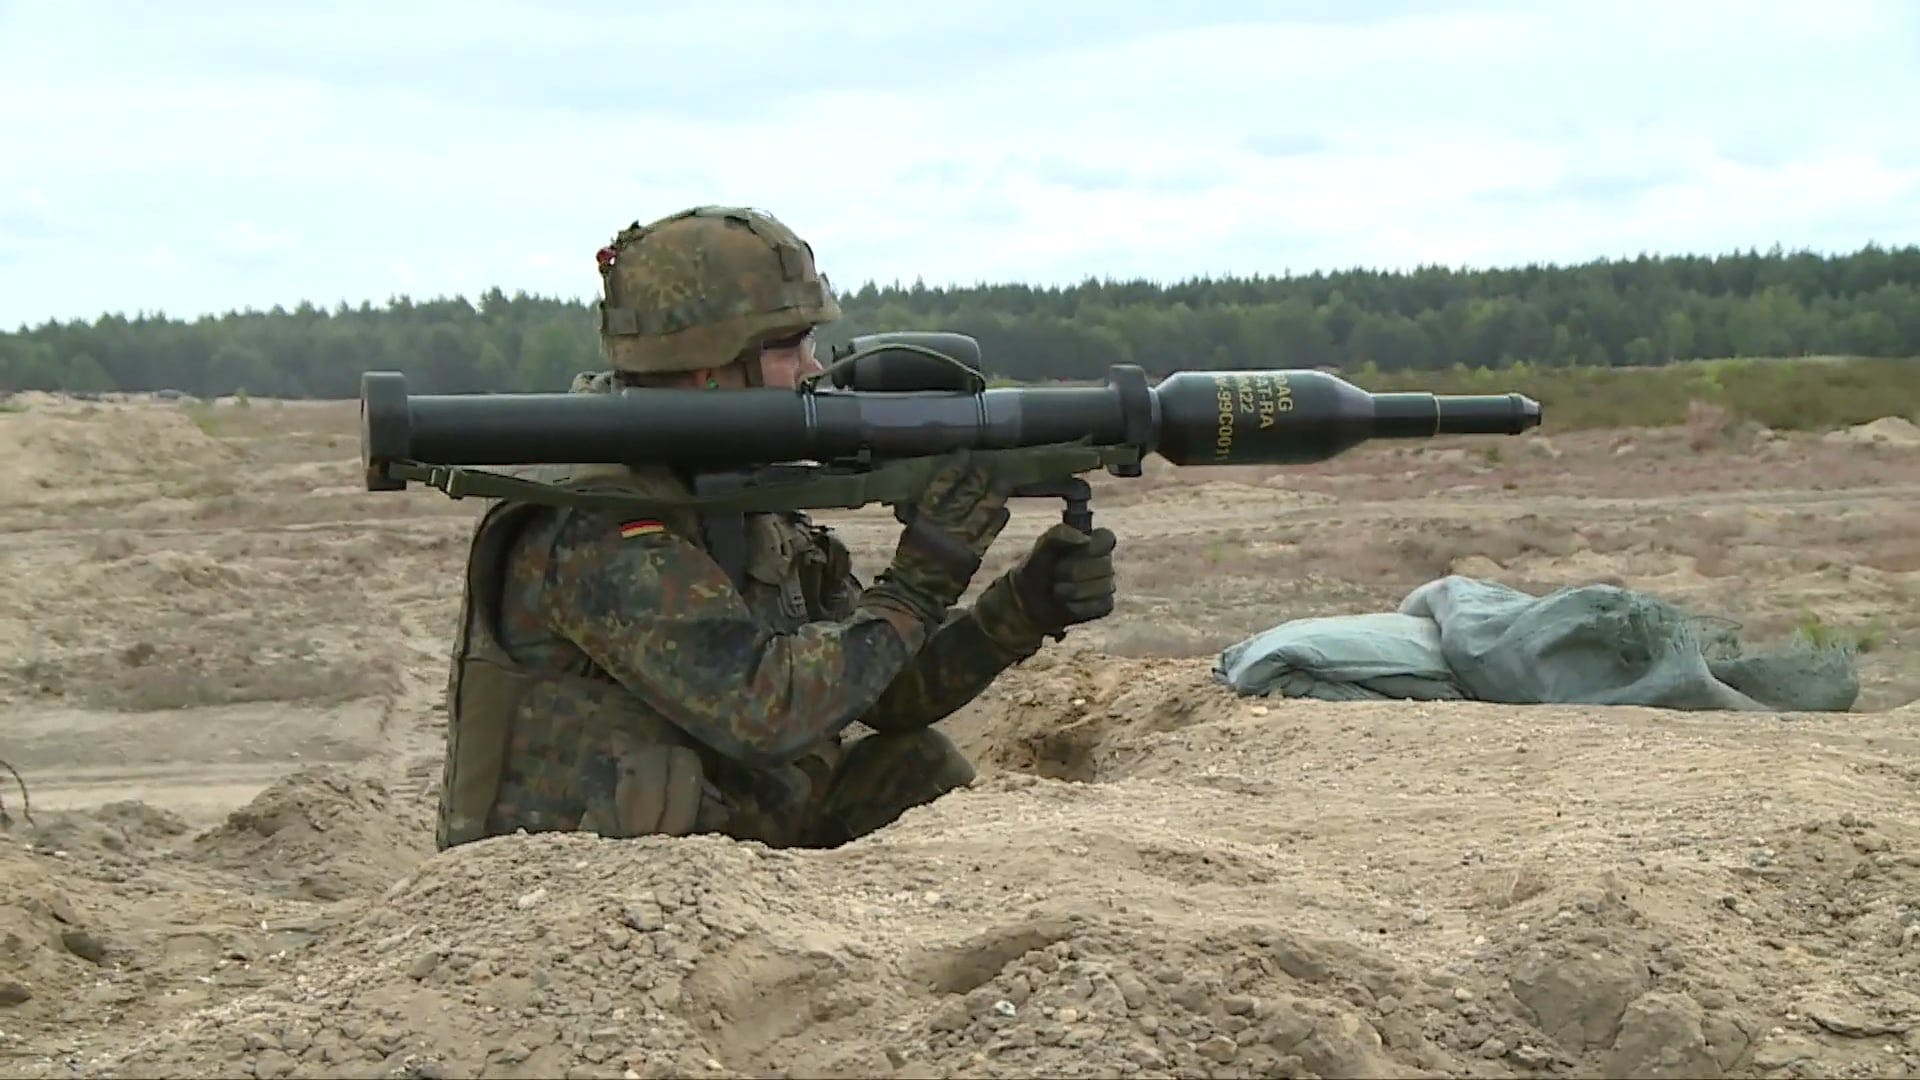 Soldiers Doing Live Ammunition Training